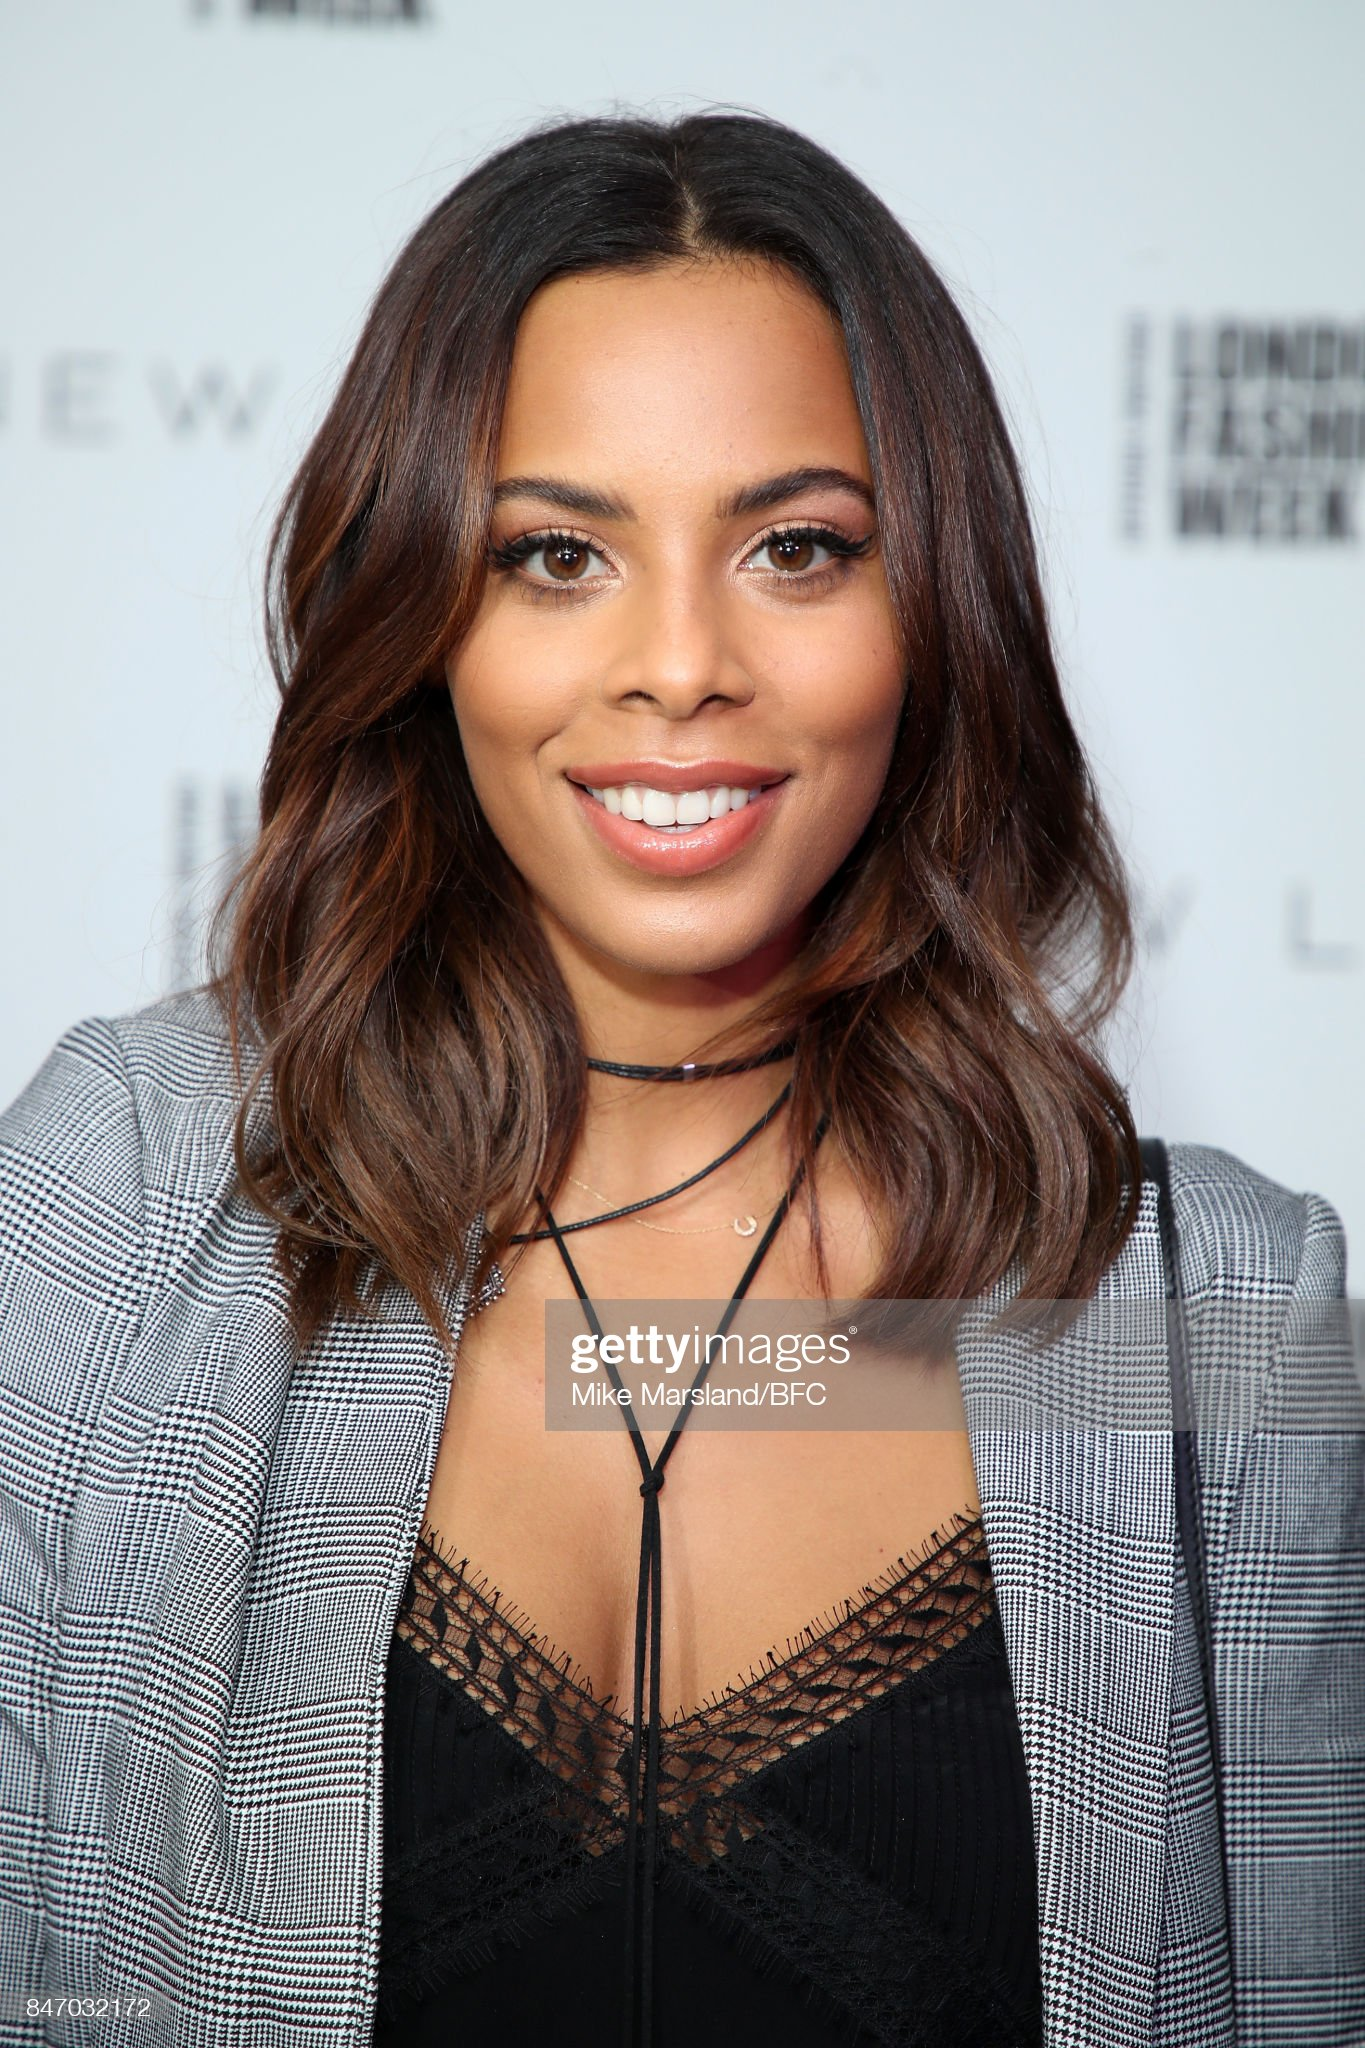 Ojos marrones - Personas famosas con los ojos de color MARRÓN Rochelle-humes-attends-the-new-look-and-the-british-fashion-council-picture-id847032172?s=2048x2048